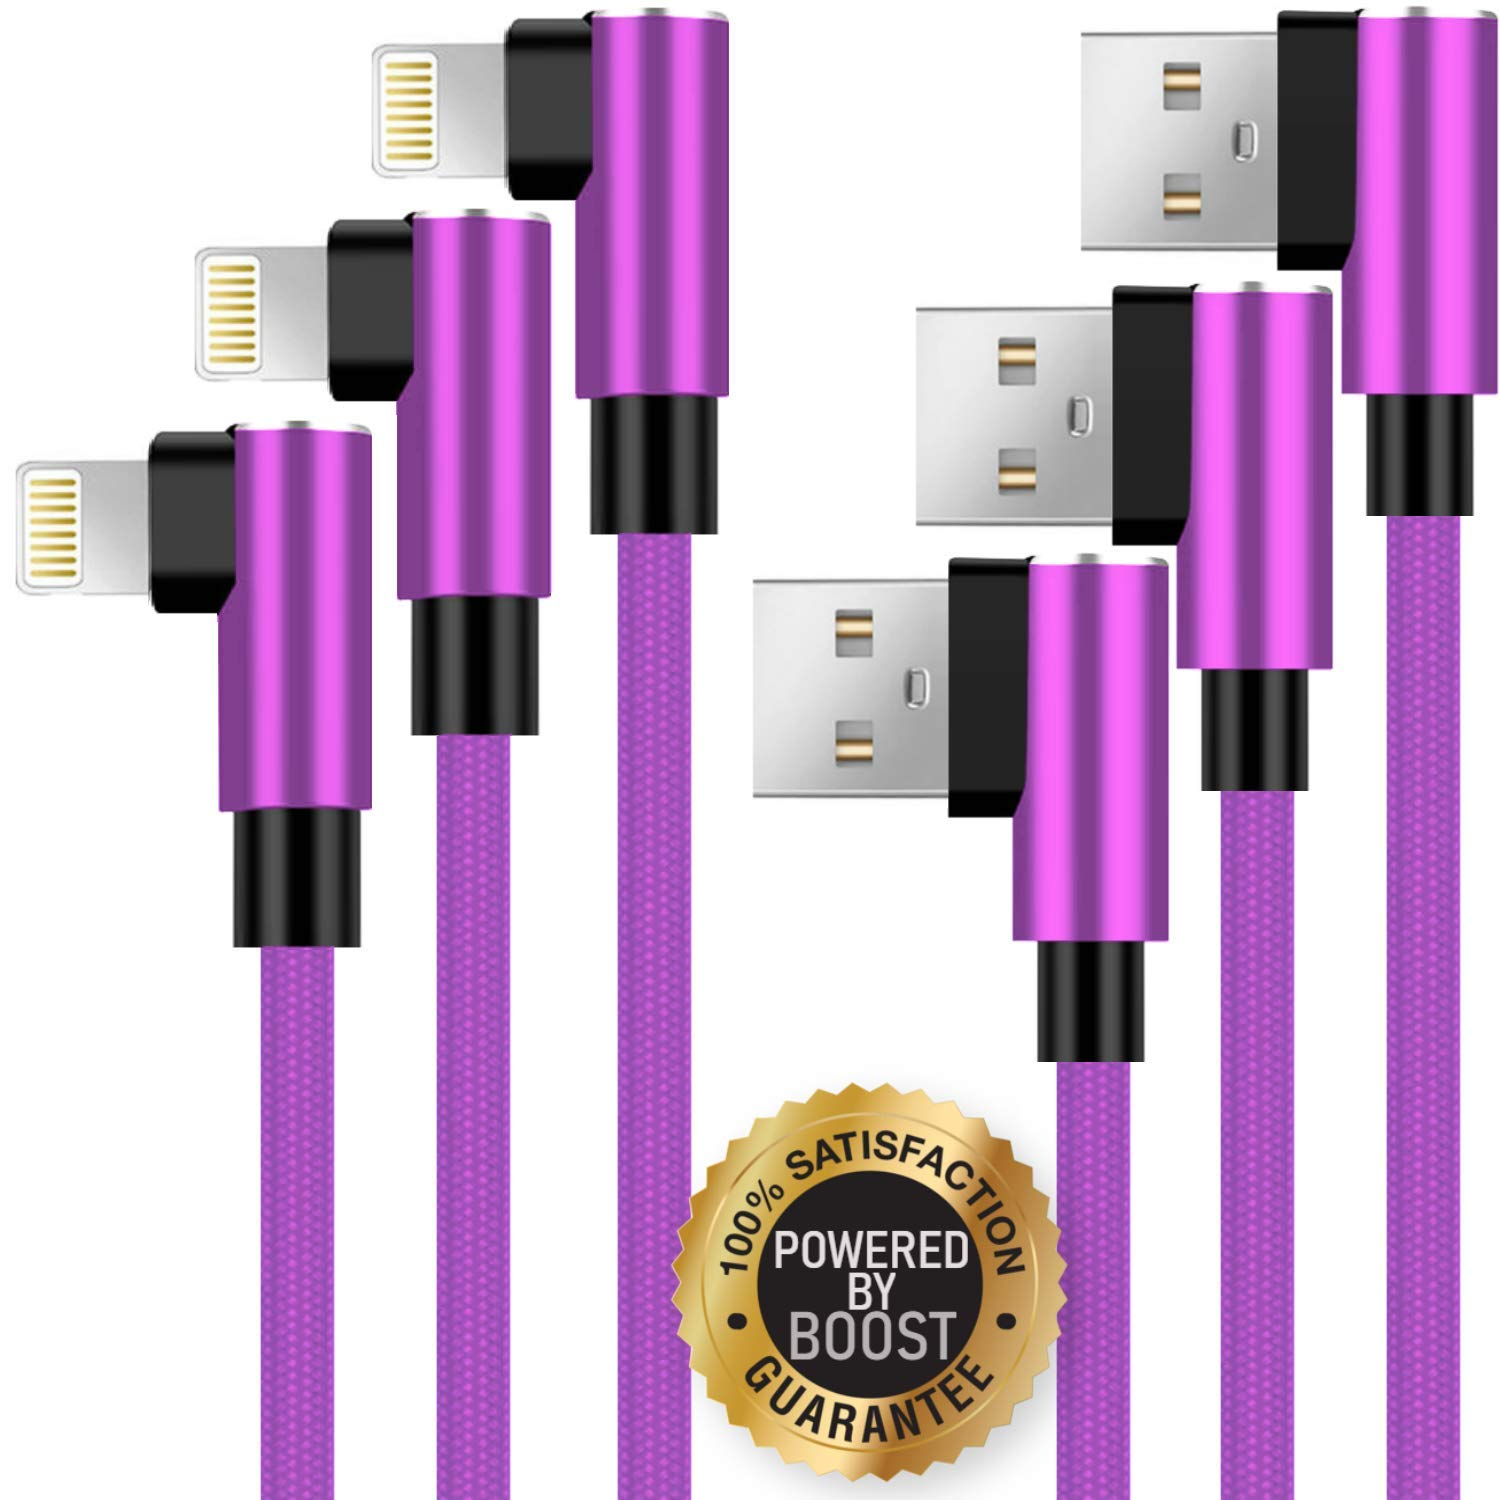 Boost Chargers 3-Pack 6FT Charging Cable Nylon Braided 90 Degree Fast Charging USB Power Charge & Sync Cord Compatible with iPhone XR XS MAX X iPhone 8 8Plus 7 Plus 6S 6S Plus 6 5 SE- Purple